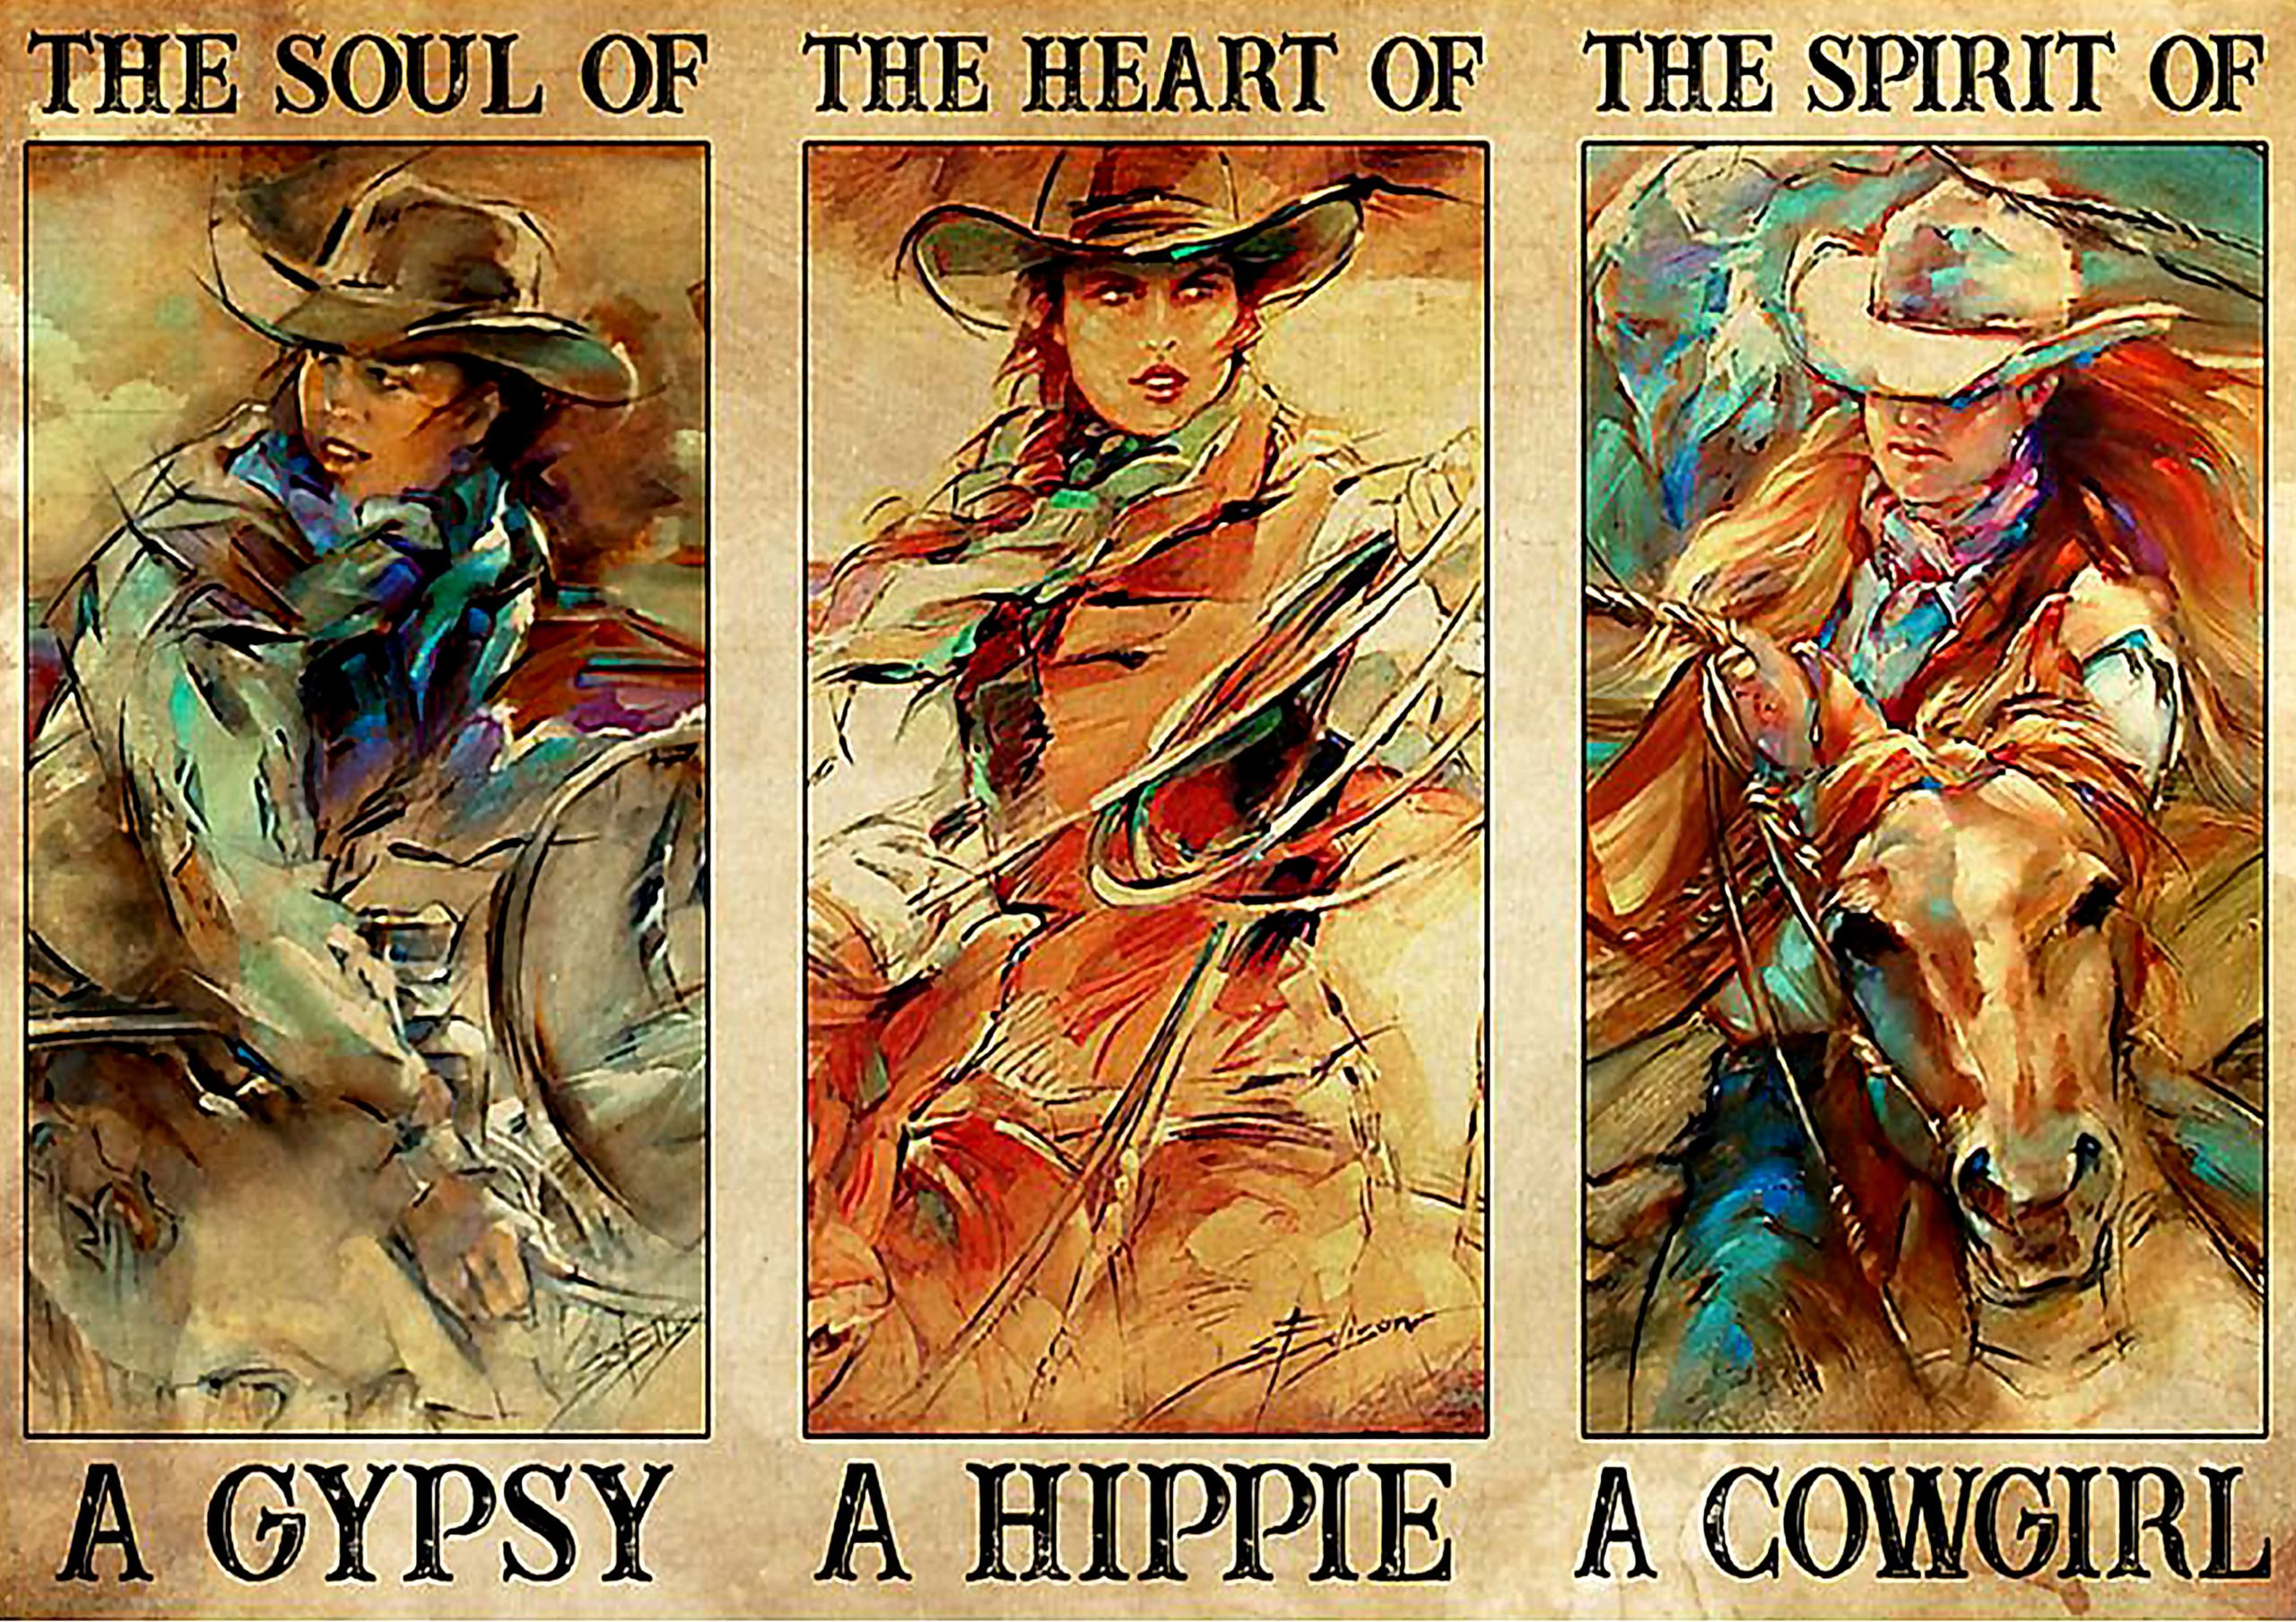 vintage the soul of a gypsy the heart of a hippie the spirit of a cowgirl poster 1 - Copy (2)